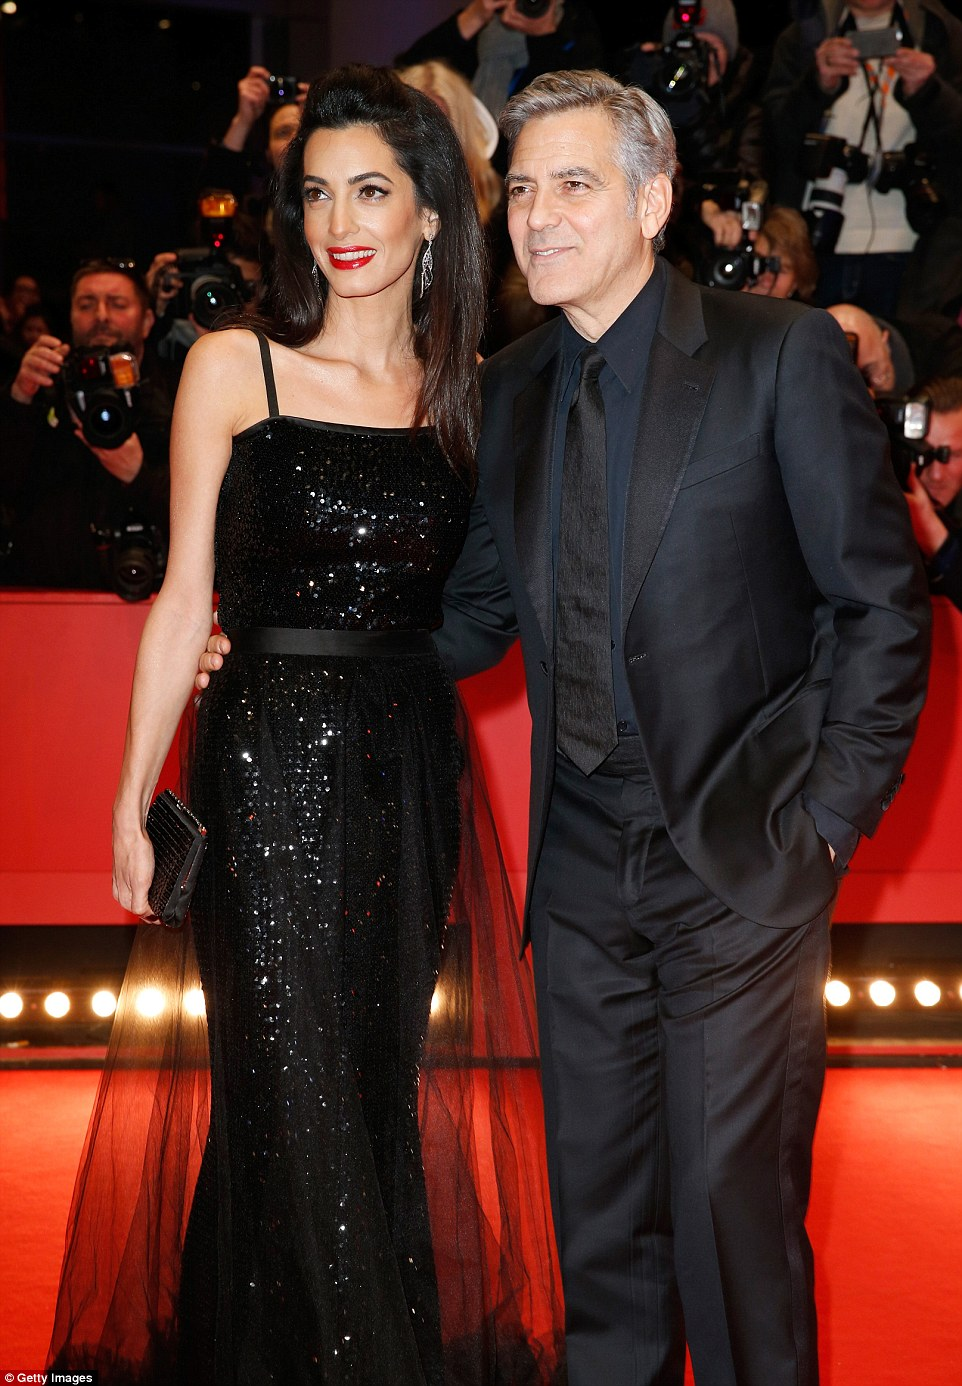 George Clooney and Amal on the red carpet for Hail Caesar Berlin Film Fest premiere 311A08D500000578-3442938-image-m-170_1455220683325